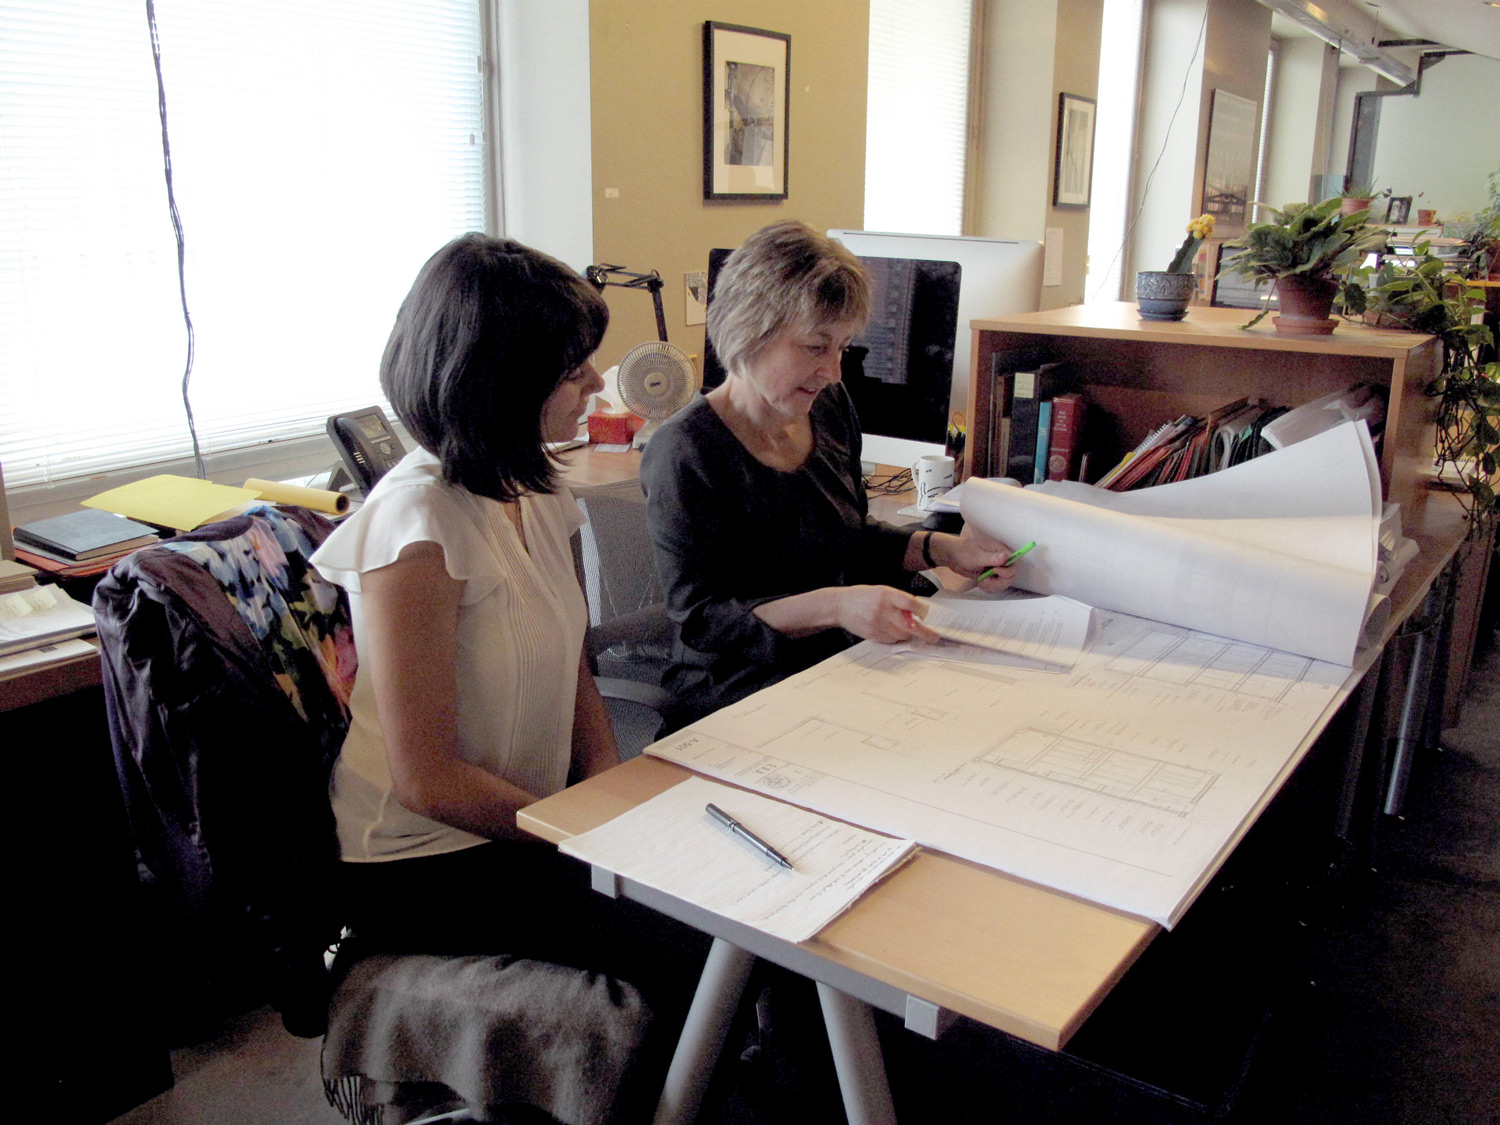 job shadowing architectural conservancy of ontario era architects gill web